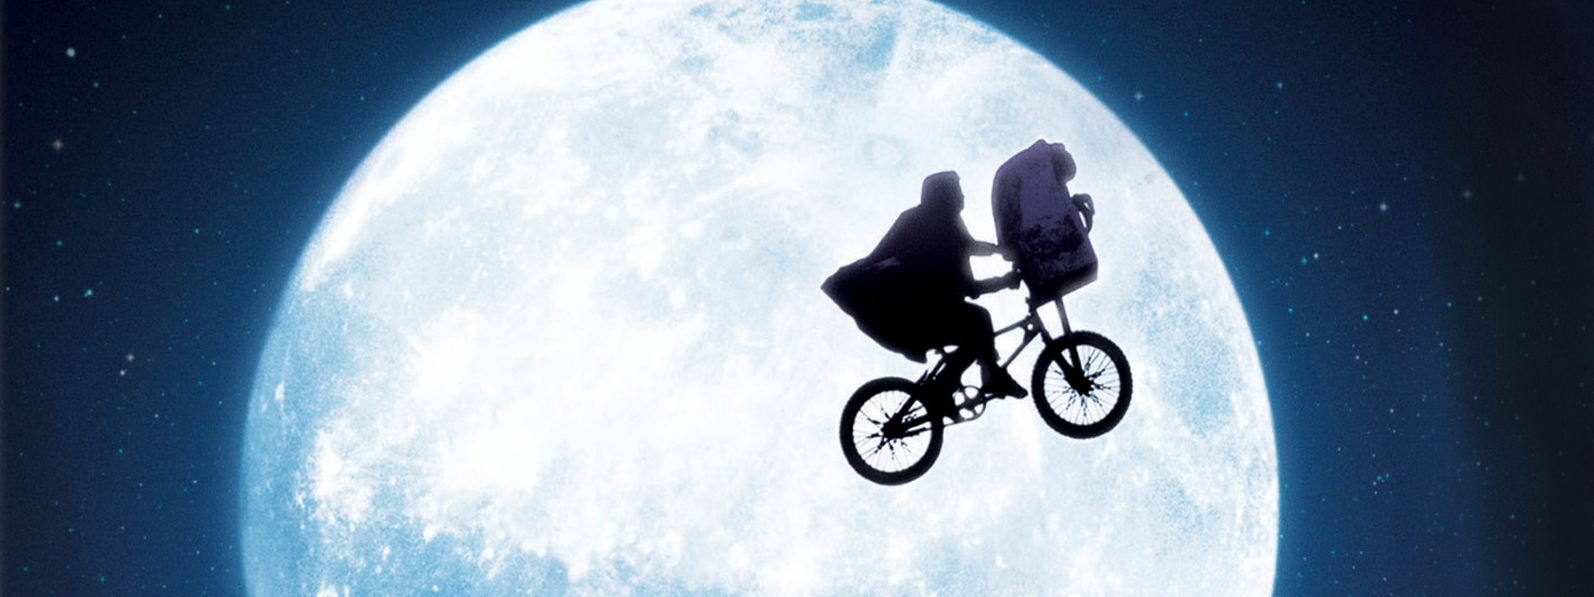 """E.T. phone home."" - E.T. The Extra Terrestrial"